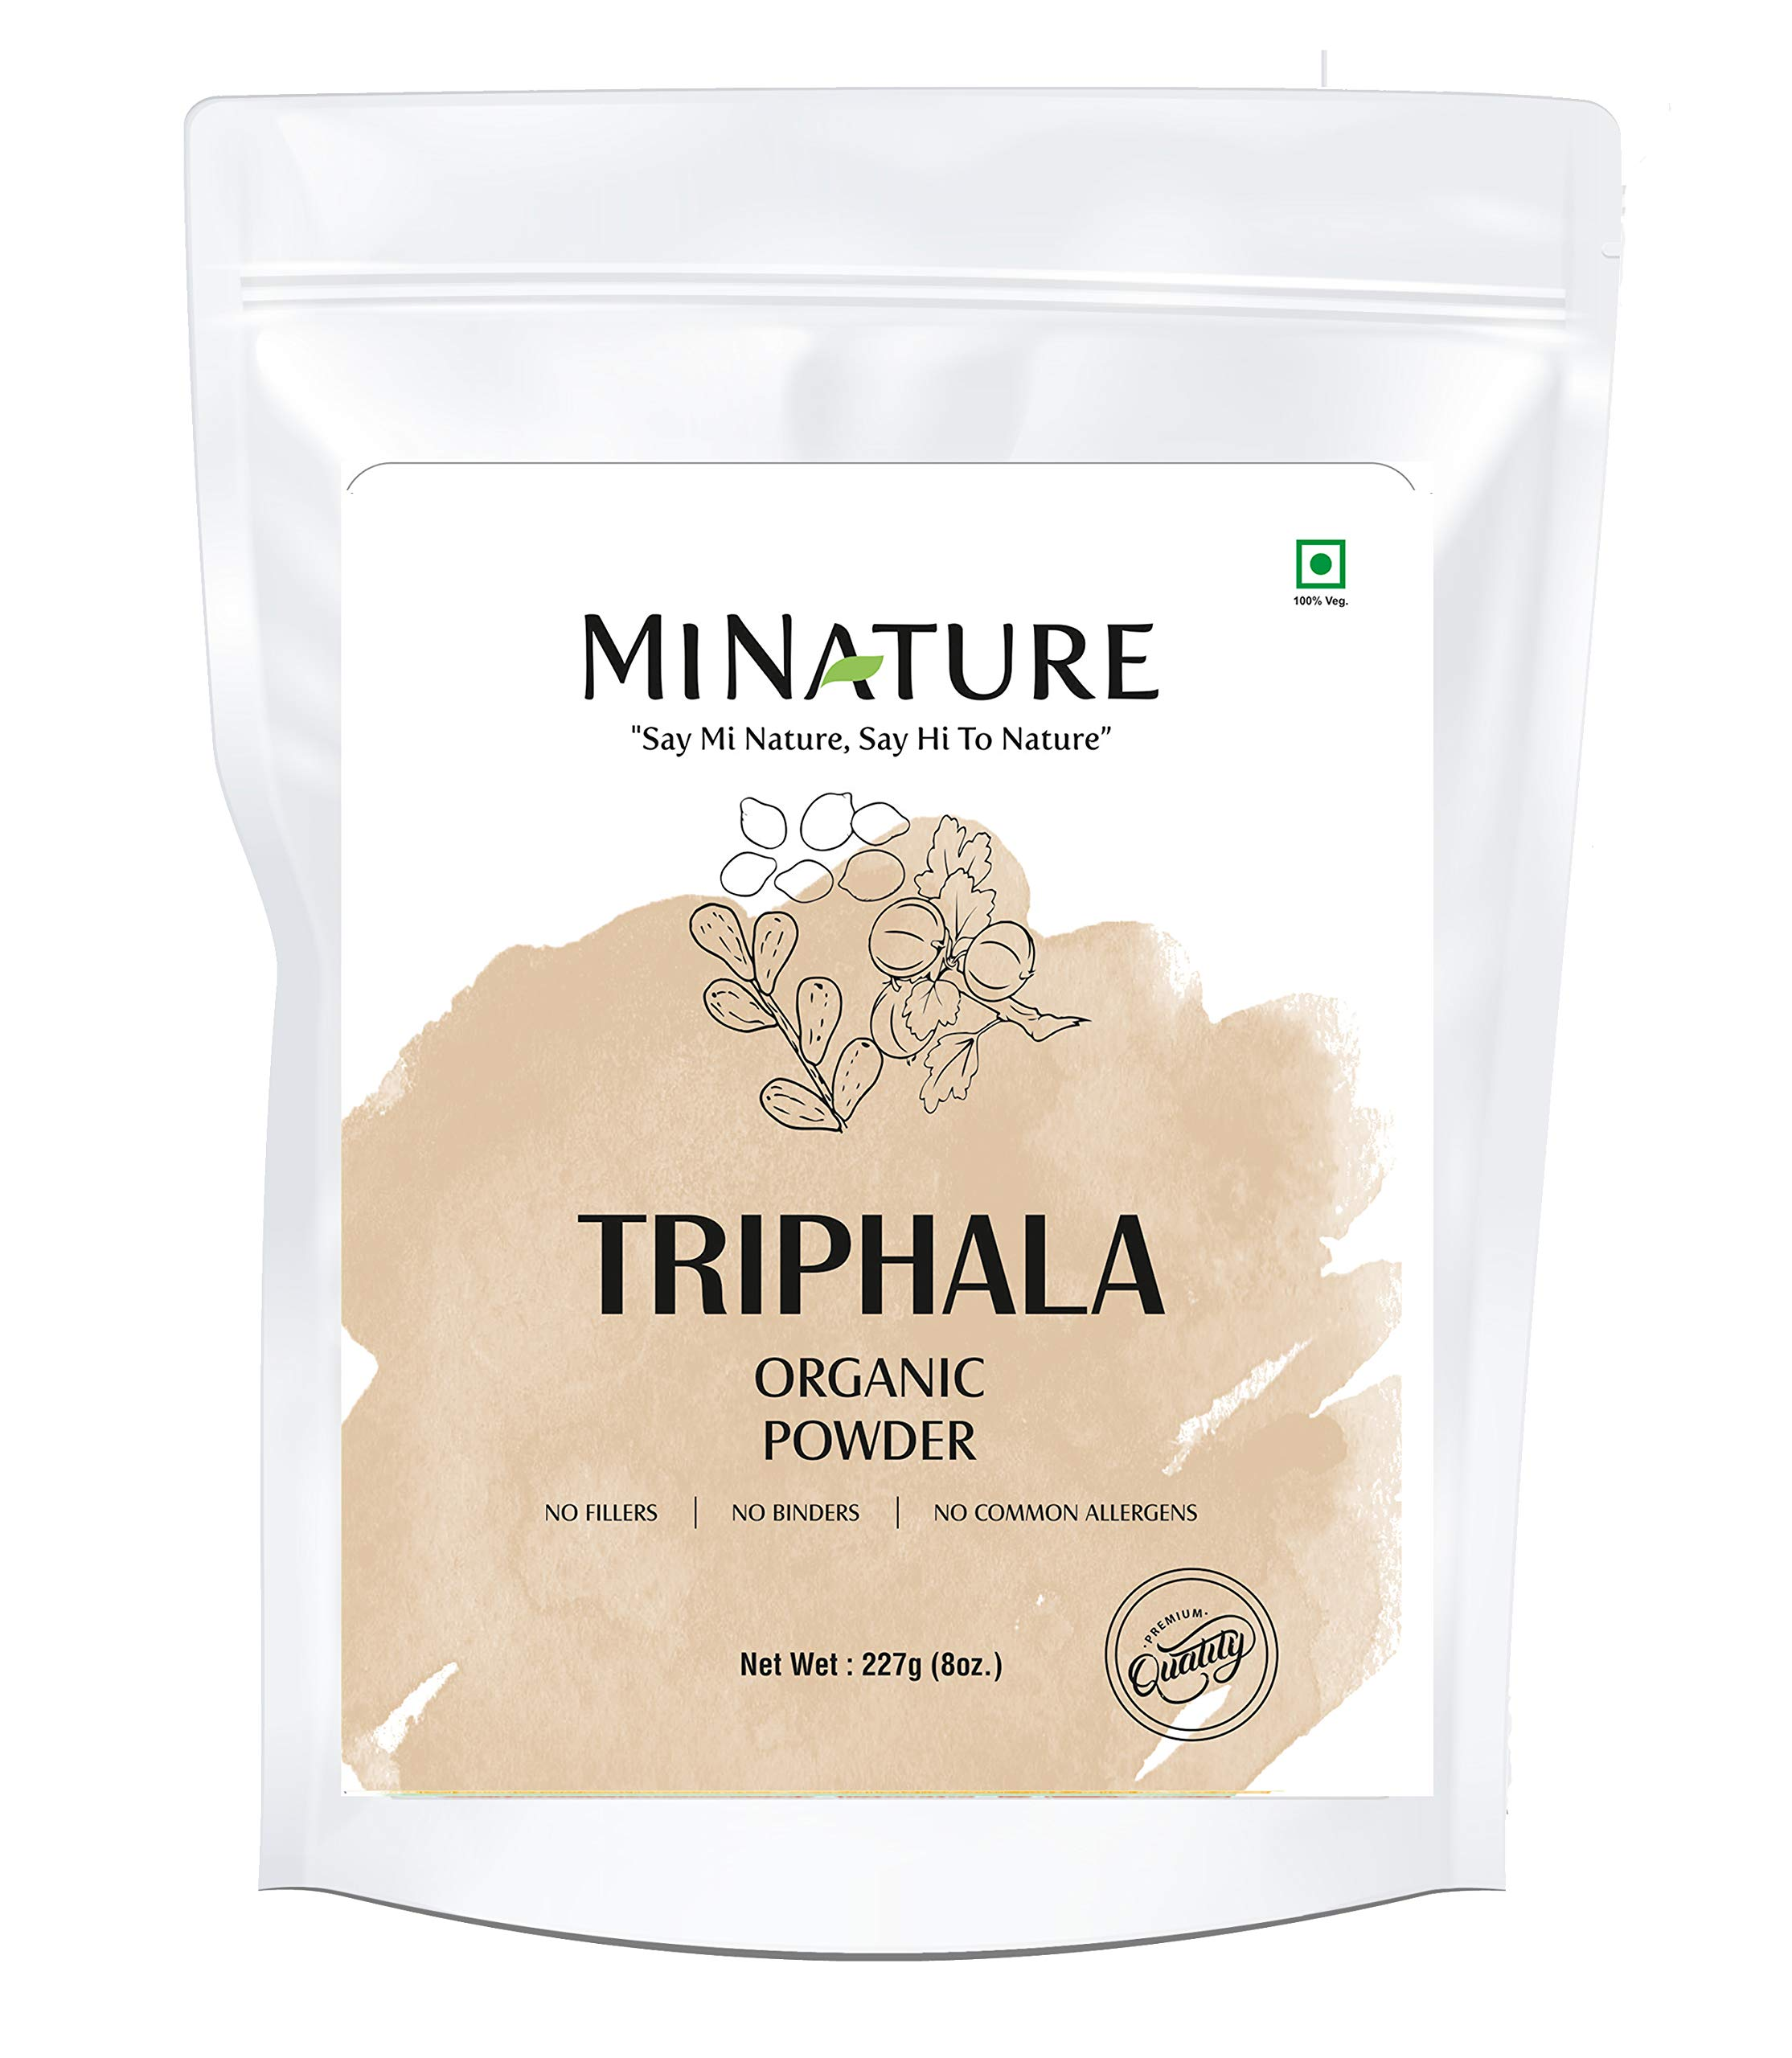 mi nature Organic USDA Certified Triphala Powder Powerfully Supports Healthy Digestion and Promotes Absorption. Balancing Formula for Detoxification, Pure, Natural (227g) - Resealable Zip Lock Pouch